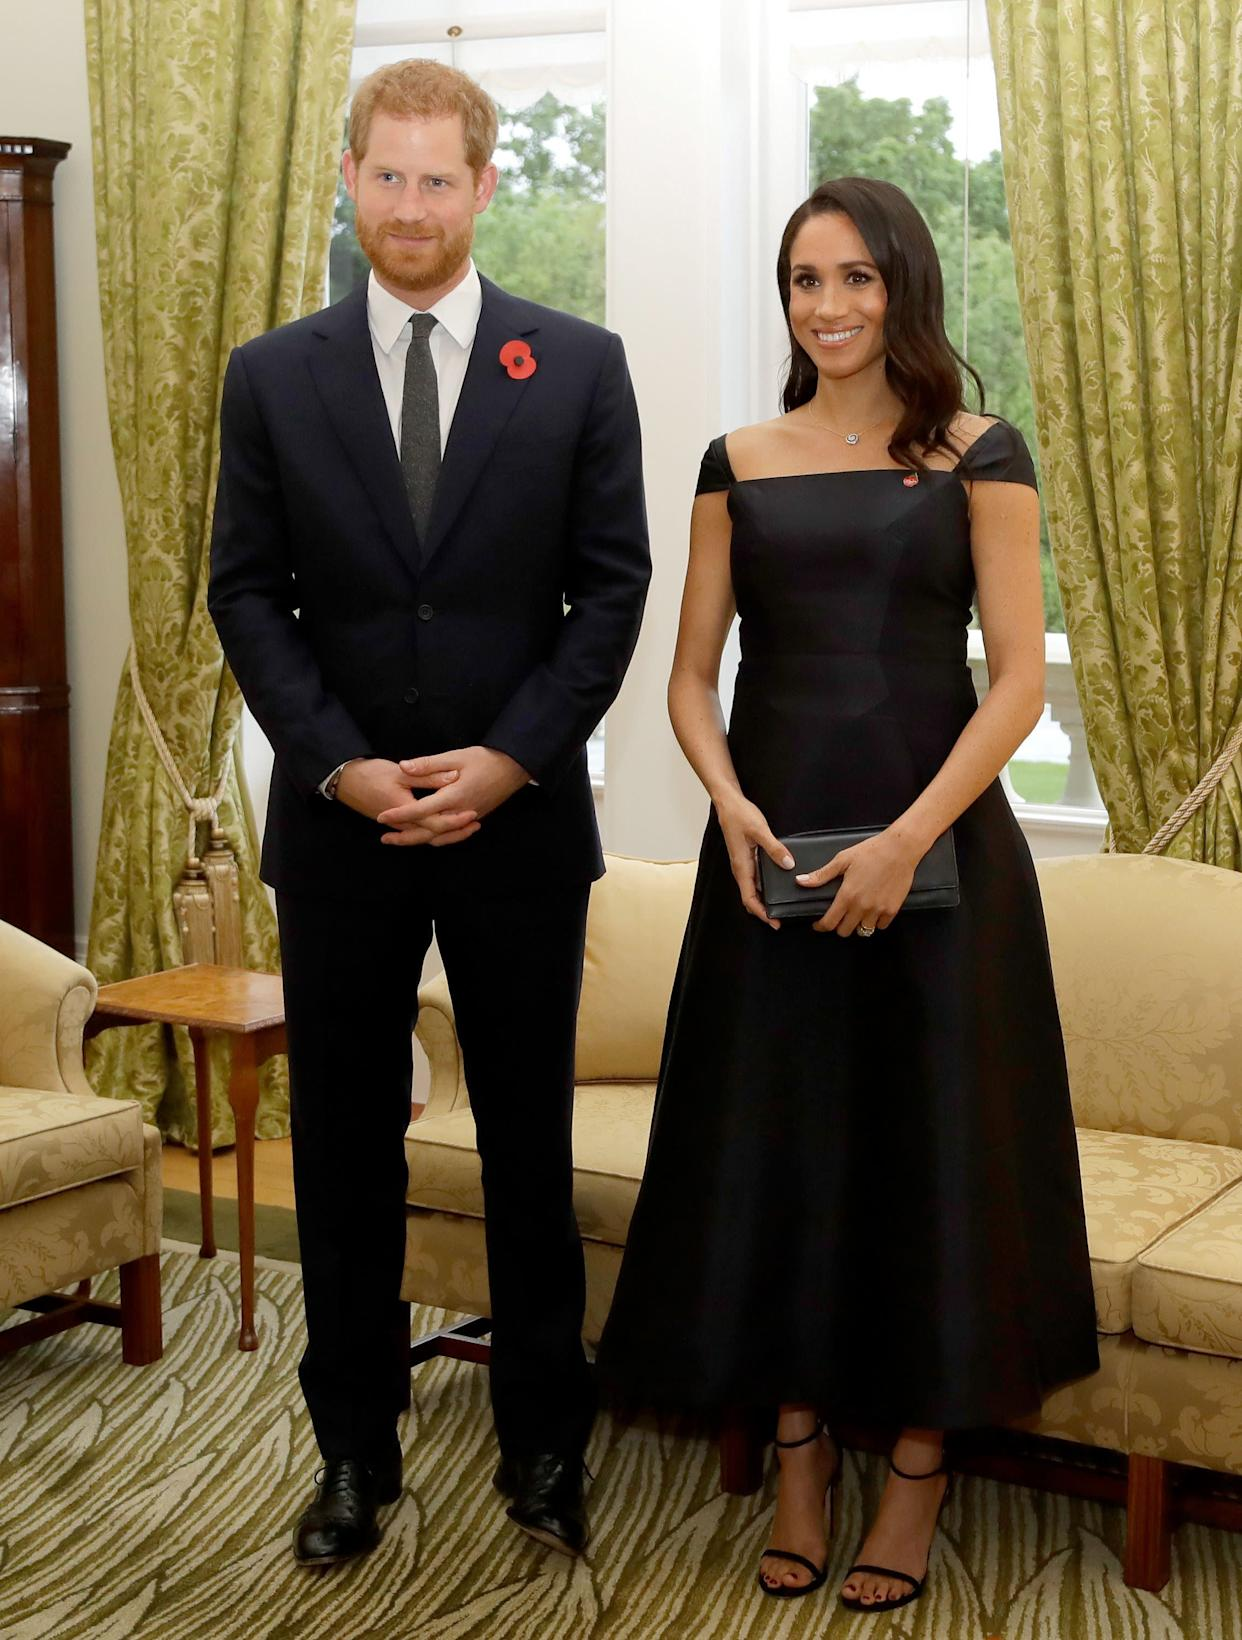 The duke and duchess attend a reception at Government House on Oct. 28 in Wellington, New Zealand.